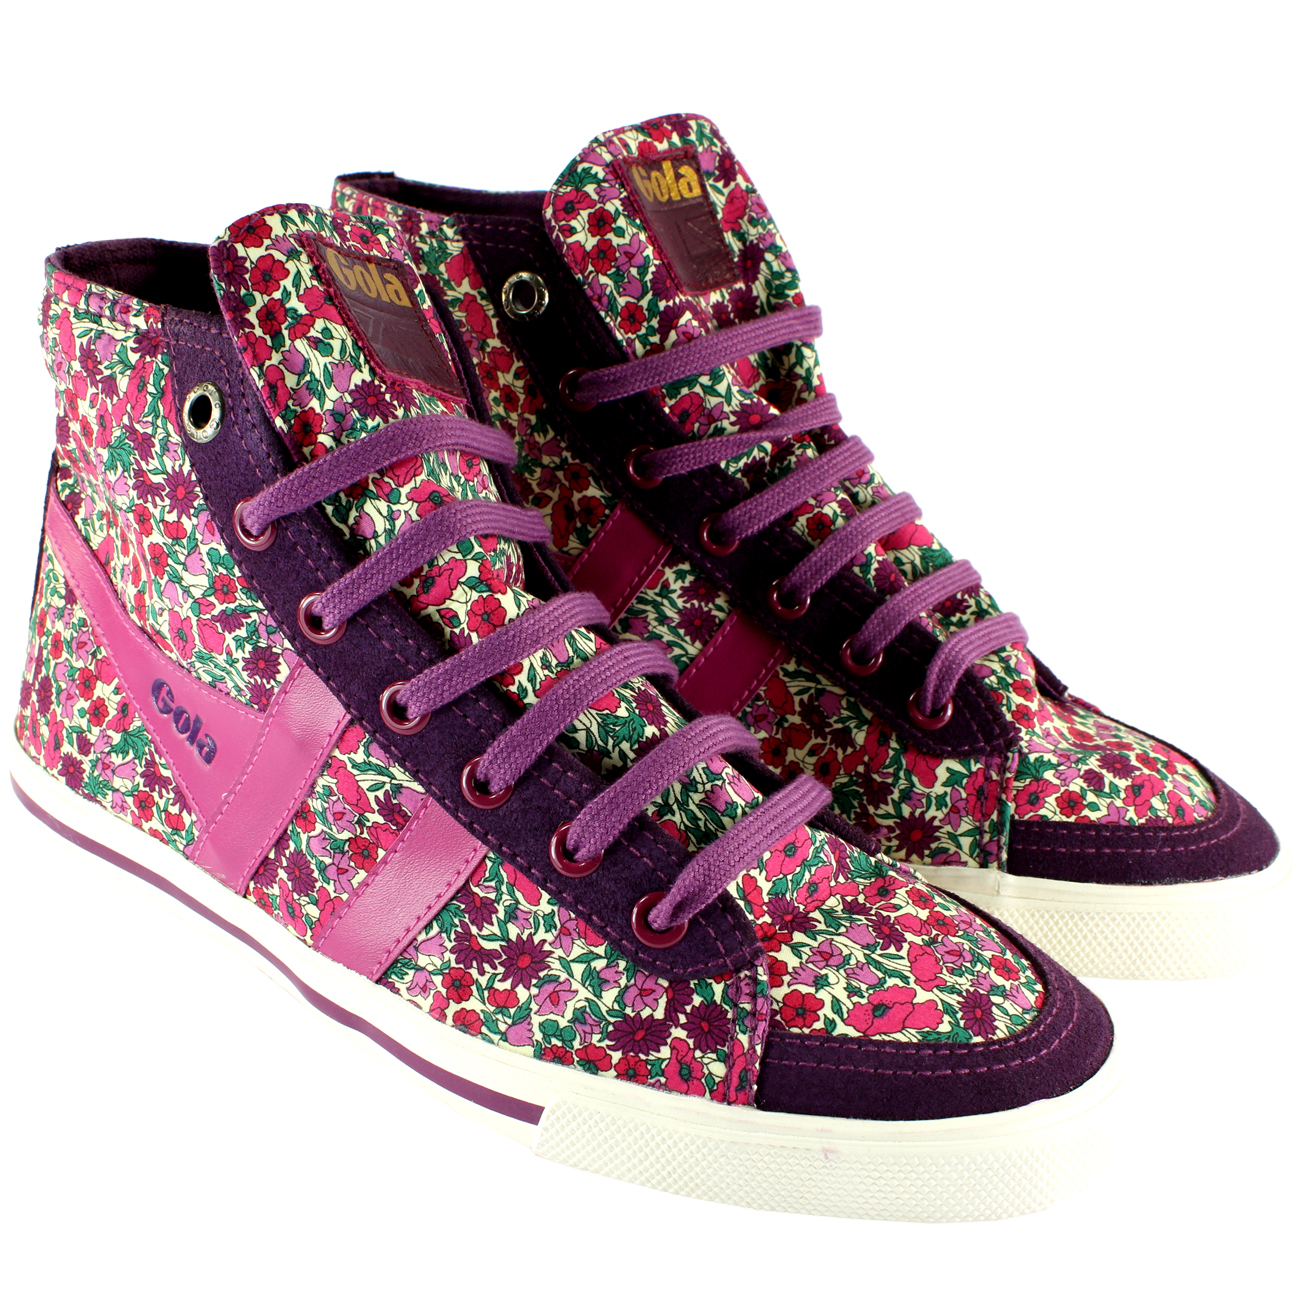 Gola Liberty Quota High Top Petal Trainers